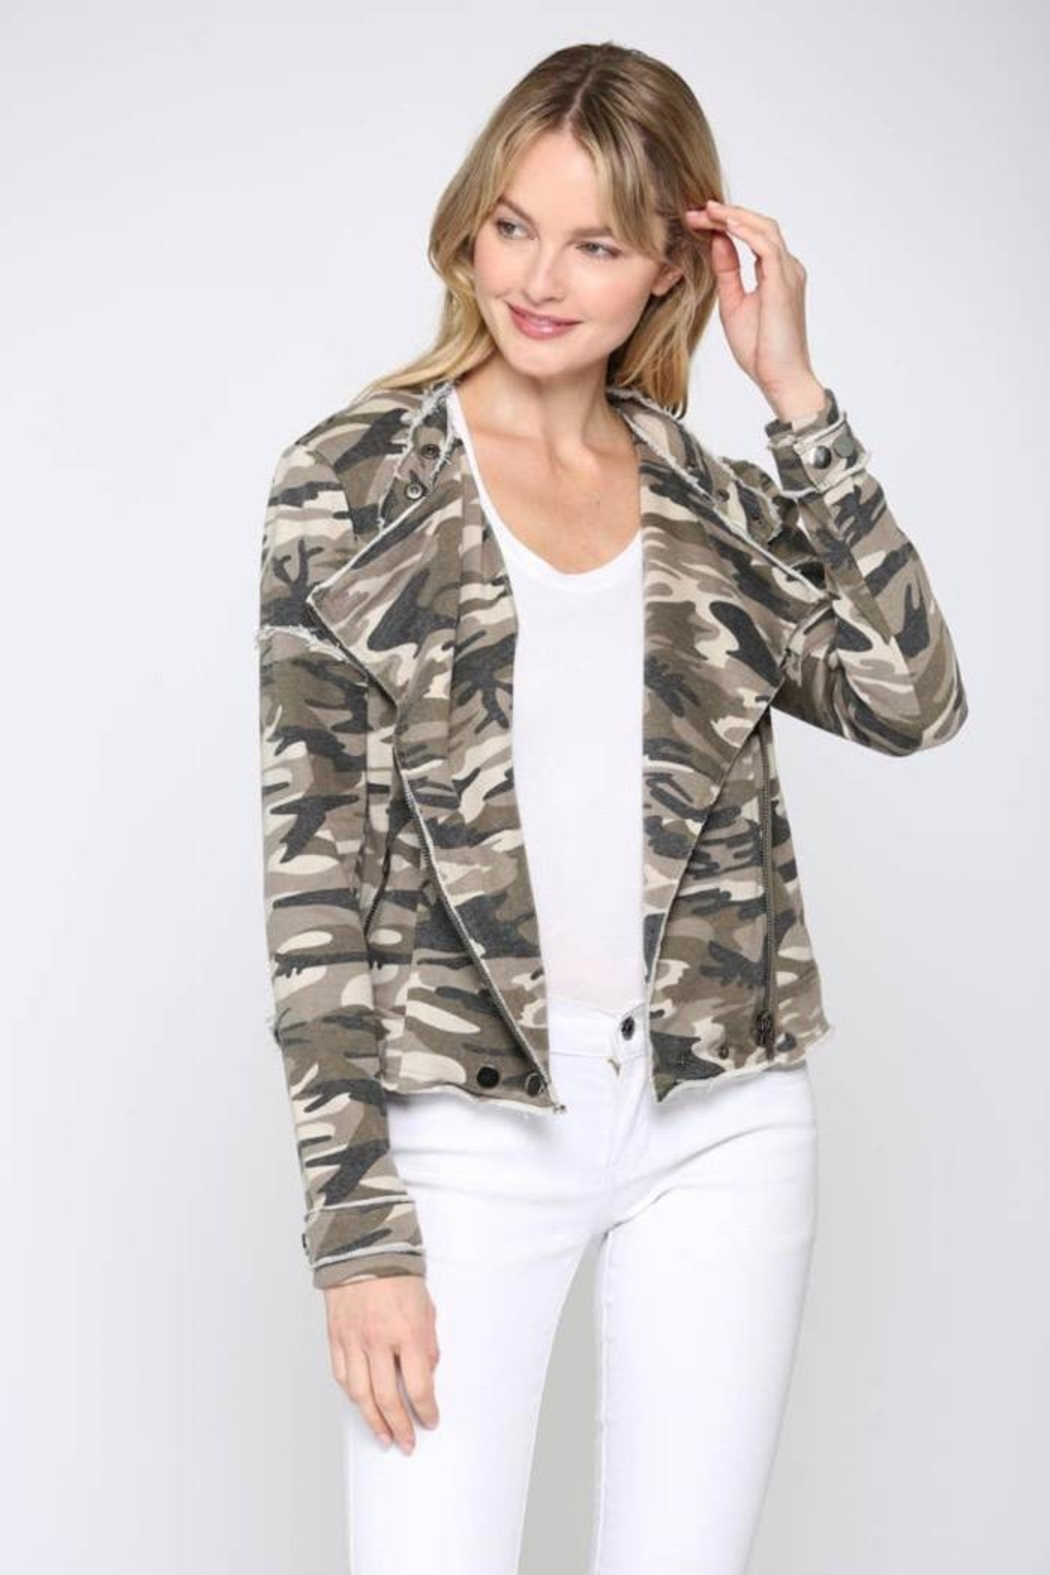 FATE by LFD Camo Printed Jacket - Main Image